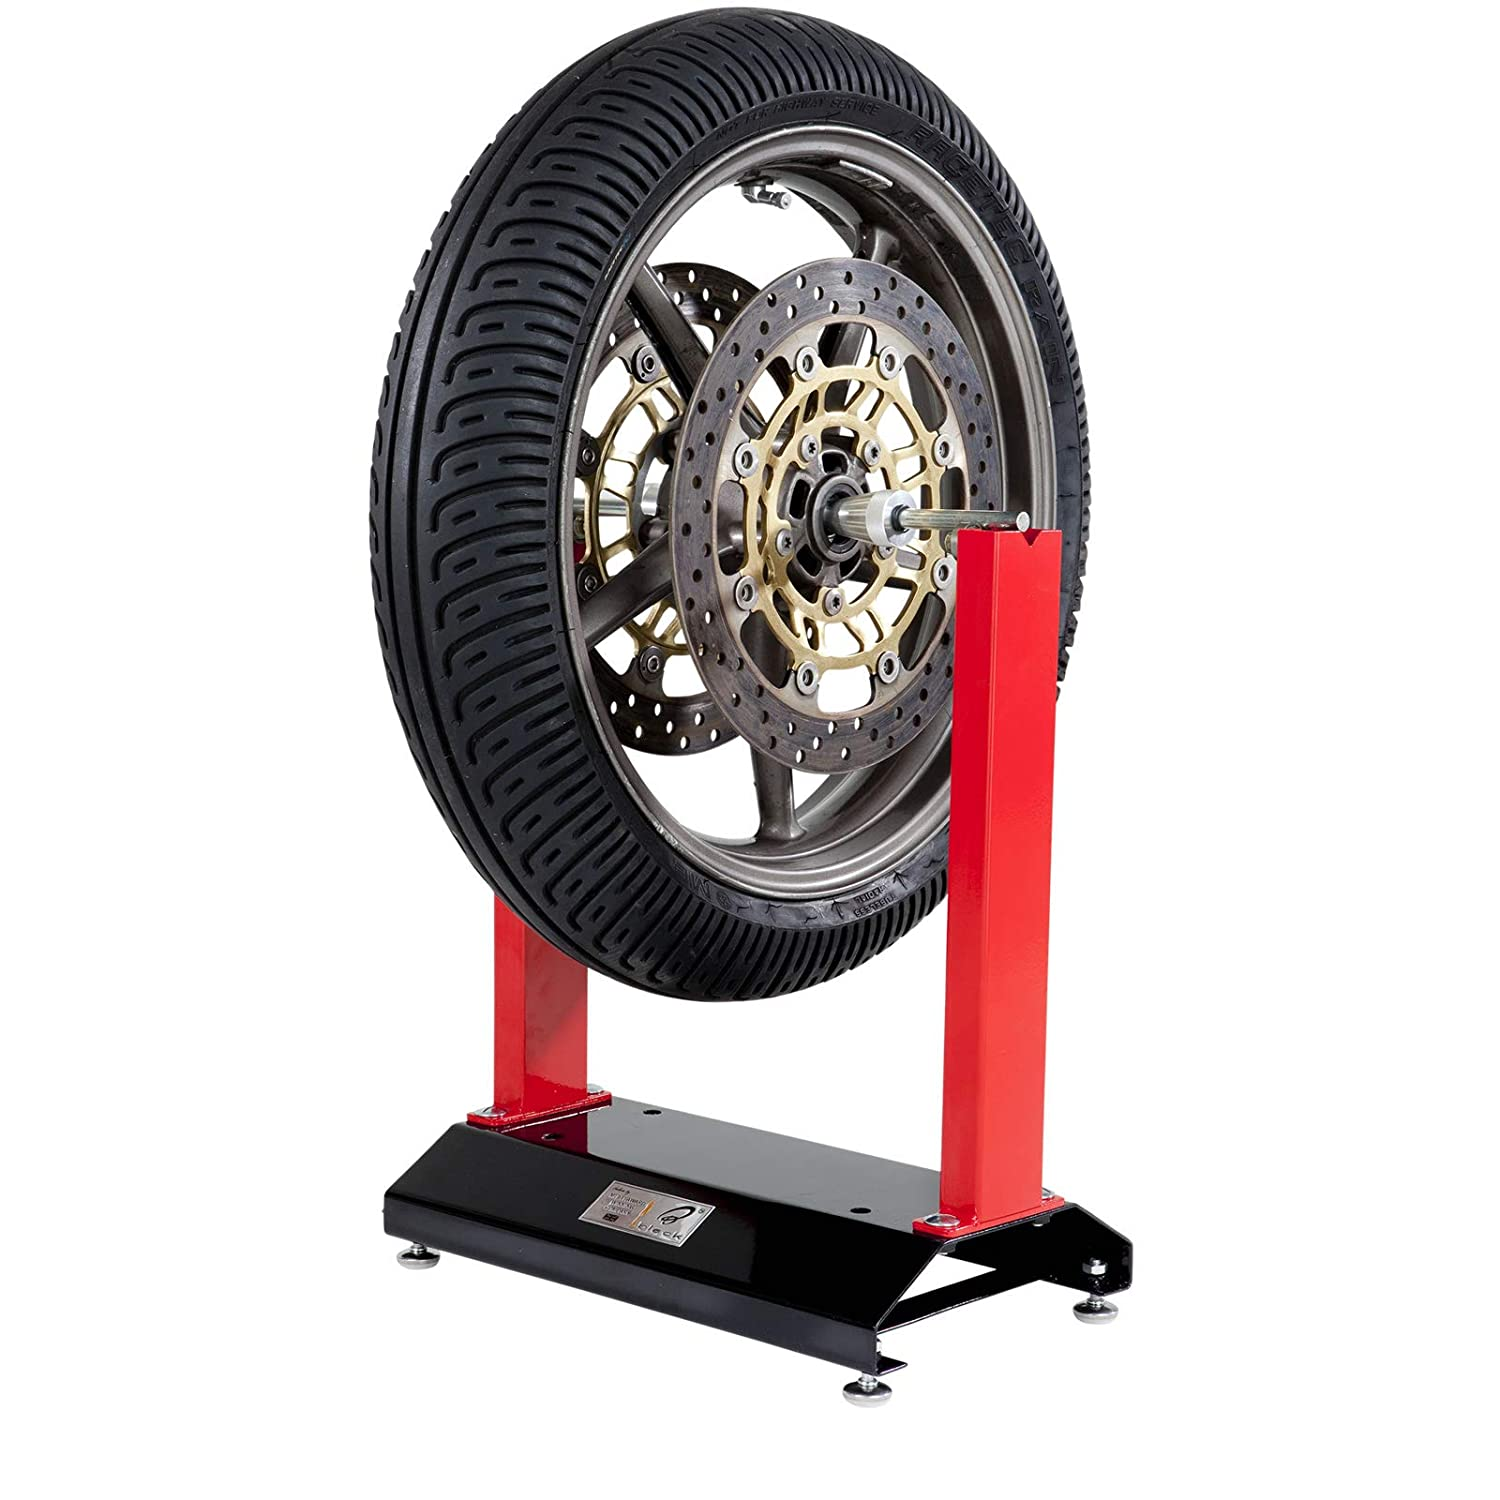 5071 - Black Pro Range B5071 Wheel Balancer BlackTM